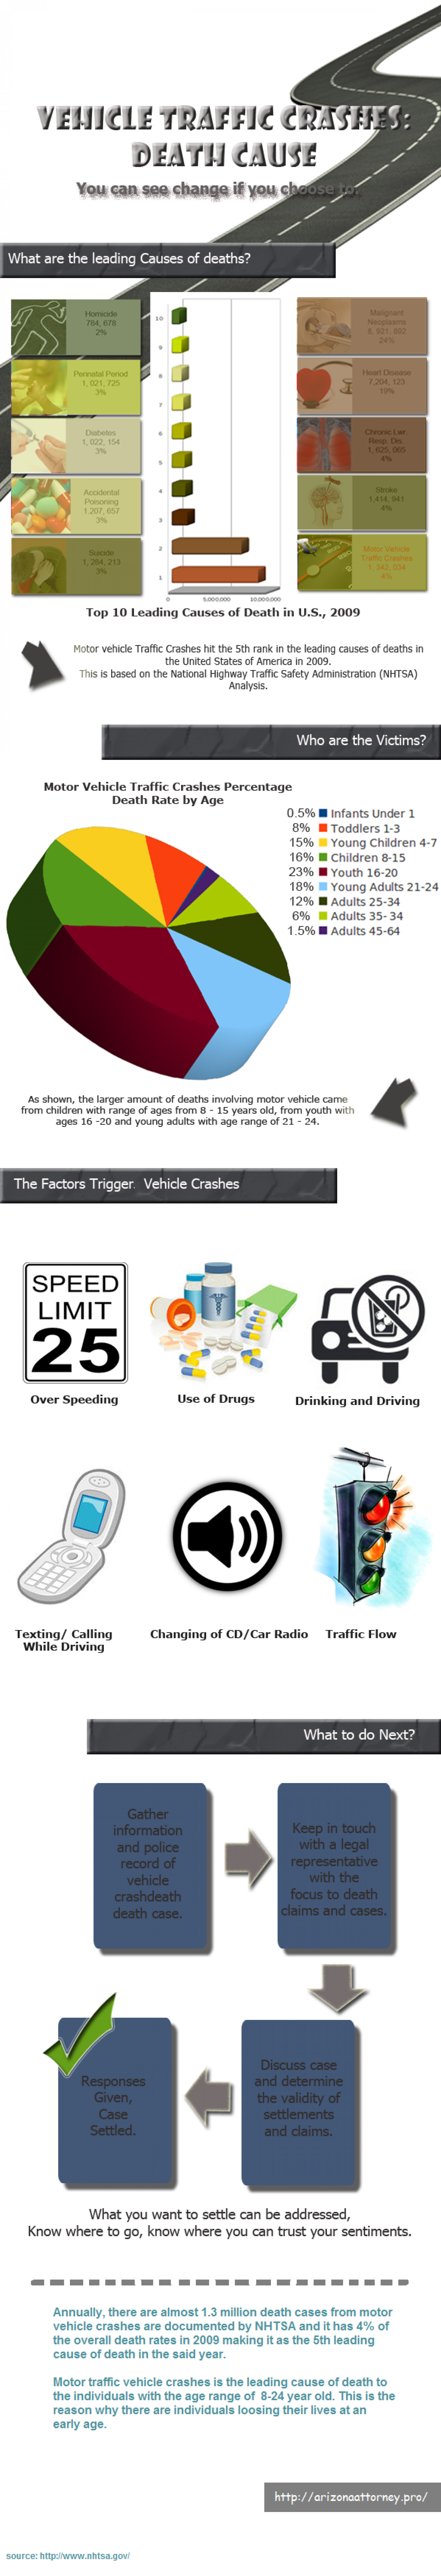 Vehicle Traffic Crashes: Death Cause (Infographic) Infographic